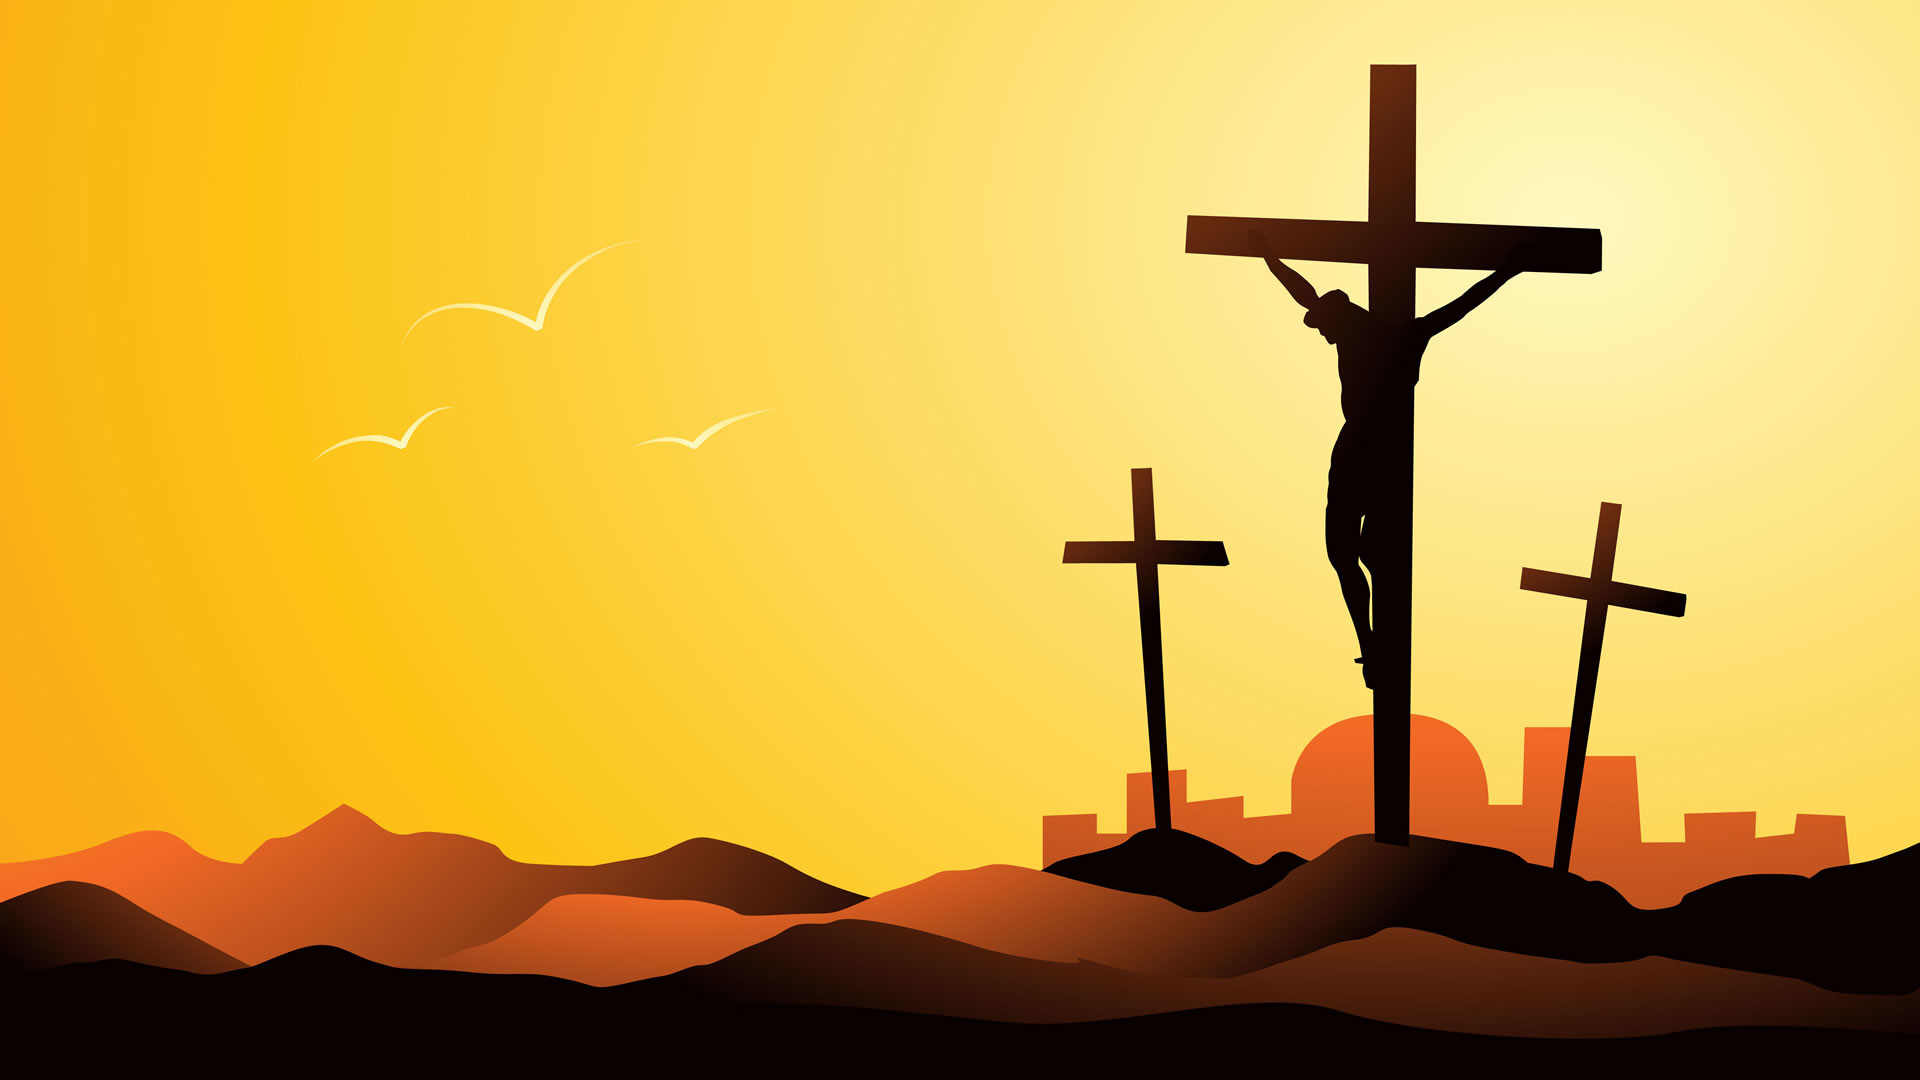 Res: 1920x1080, Crucifixion Seasonal Wallpaper Image featuring Easter